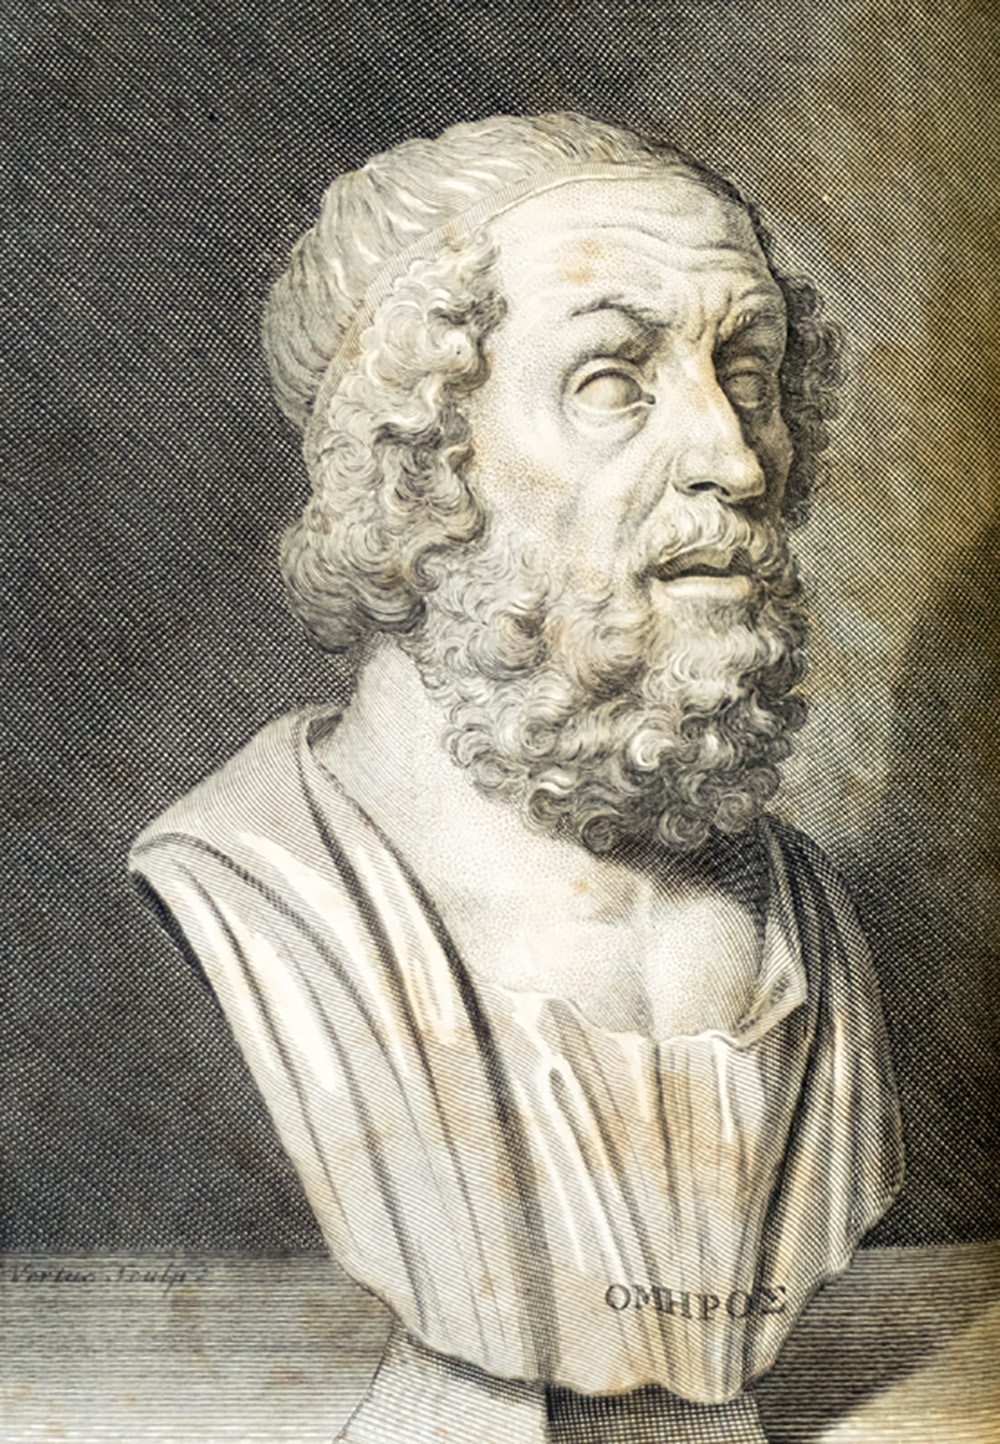 the odyssey of homer homer essay Homer (/ ˈ h oʊ m ər / greek: ὅμηρος [hómɛːros], hómēros) is the legendary author of the iliad and the odyssey, two epic poems that are the central works of ancient greek literature the iliad is set during the trojan war , the ten-year siege of the city of troy by a coalition of greek kingdoms.